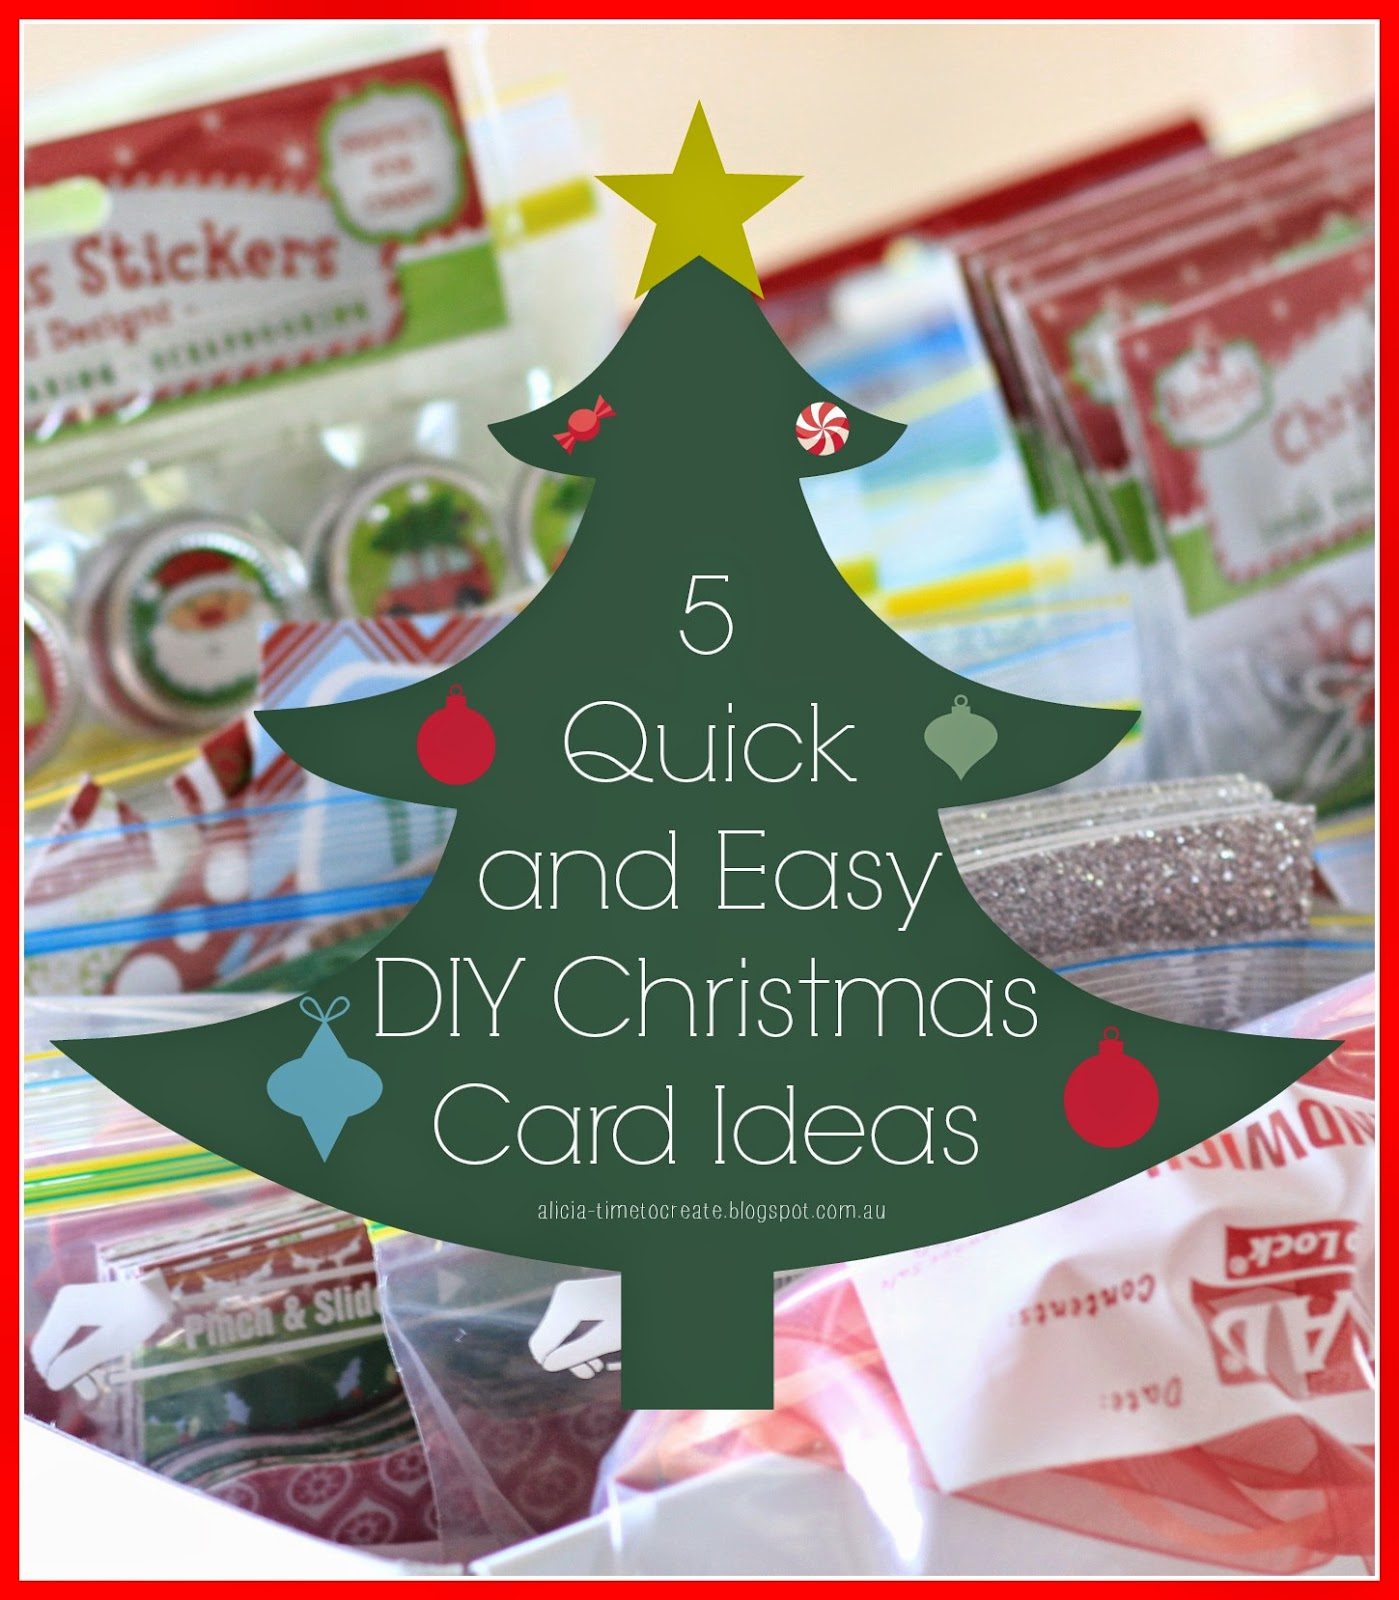 5 quick and easy diy christmas card ideas - Create Christmas Cards